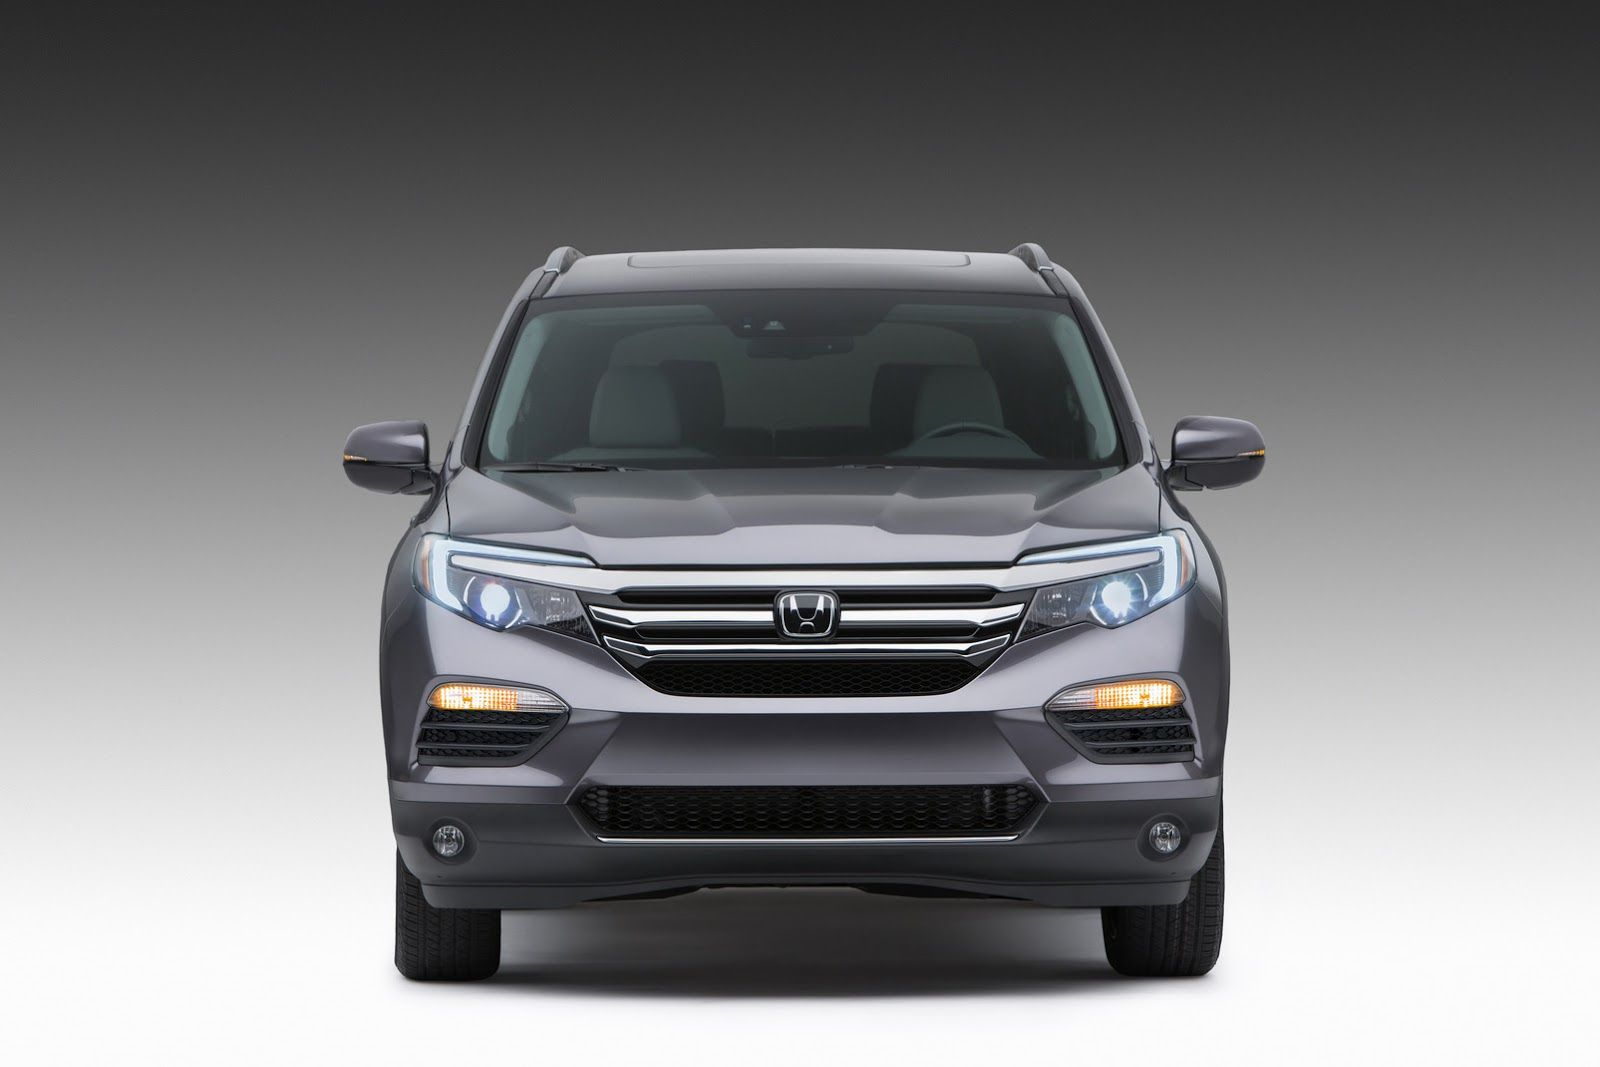 Honda has released the first photos of the new pilot suv capable of hauling 8 passengers the car was presented at the chicago auto show and will compete